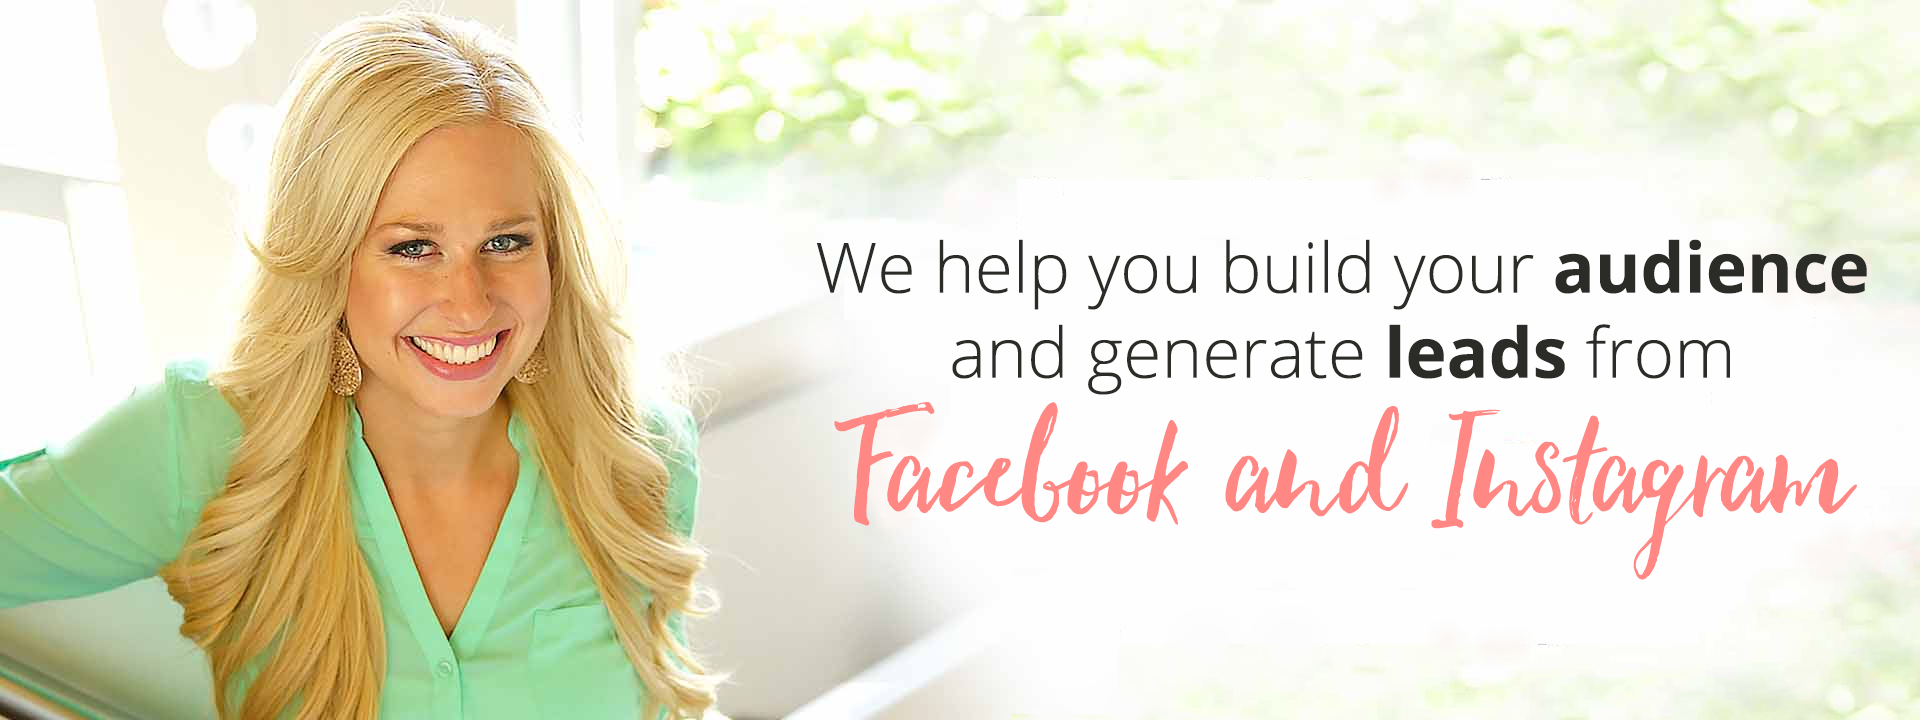 Facebook advertising expert san diego